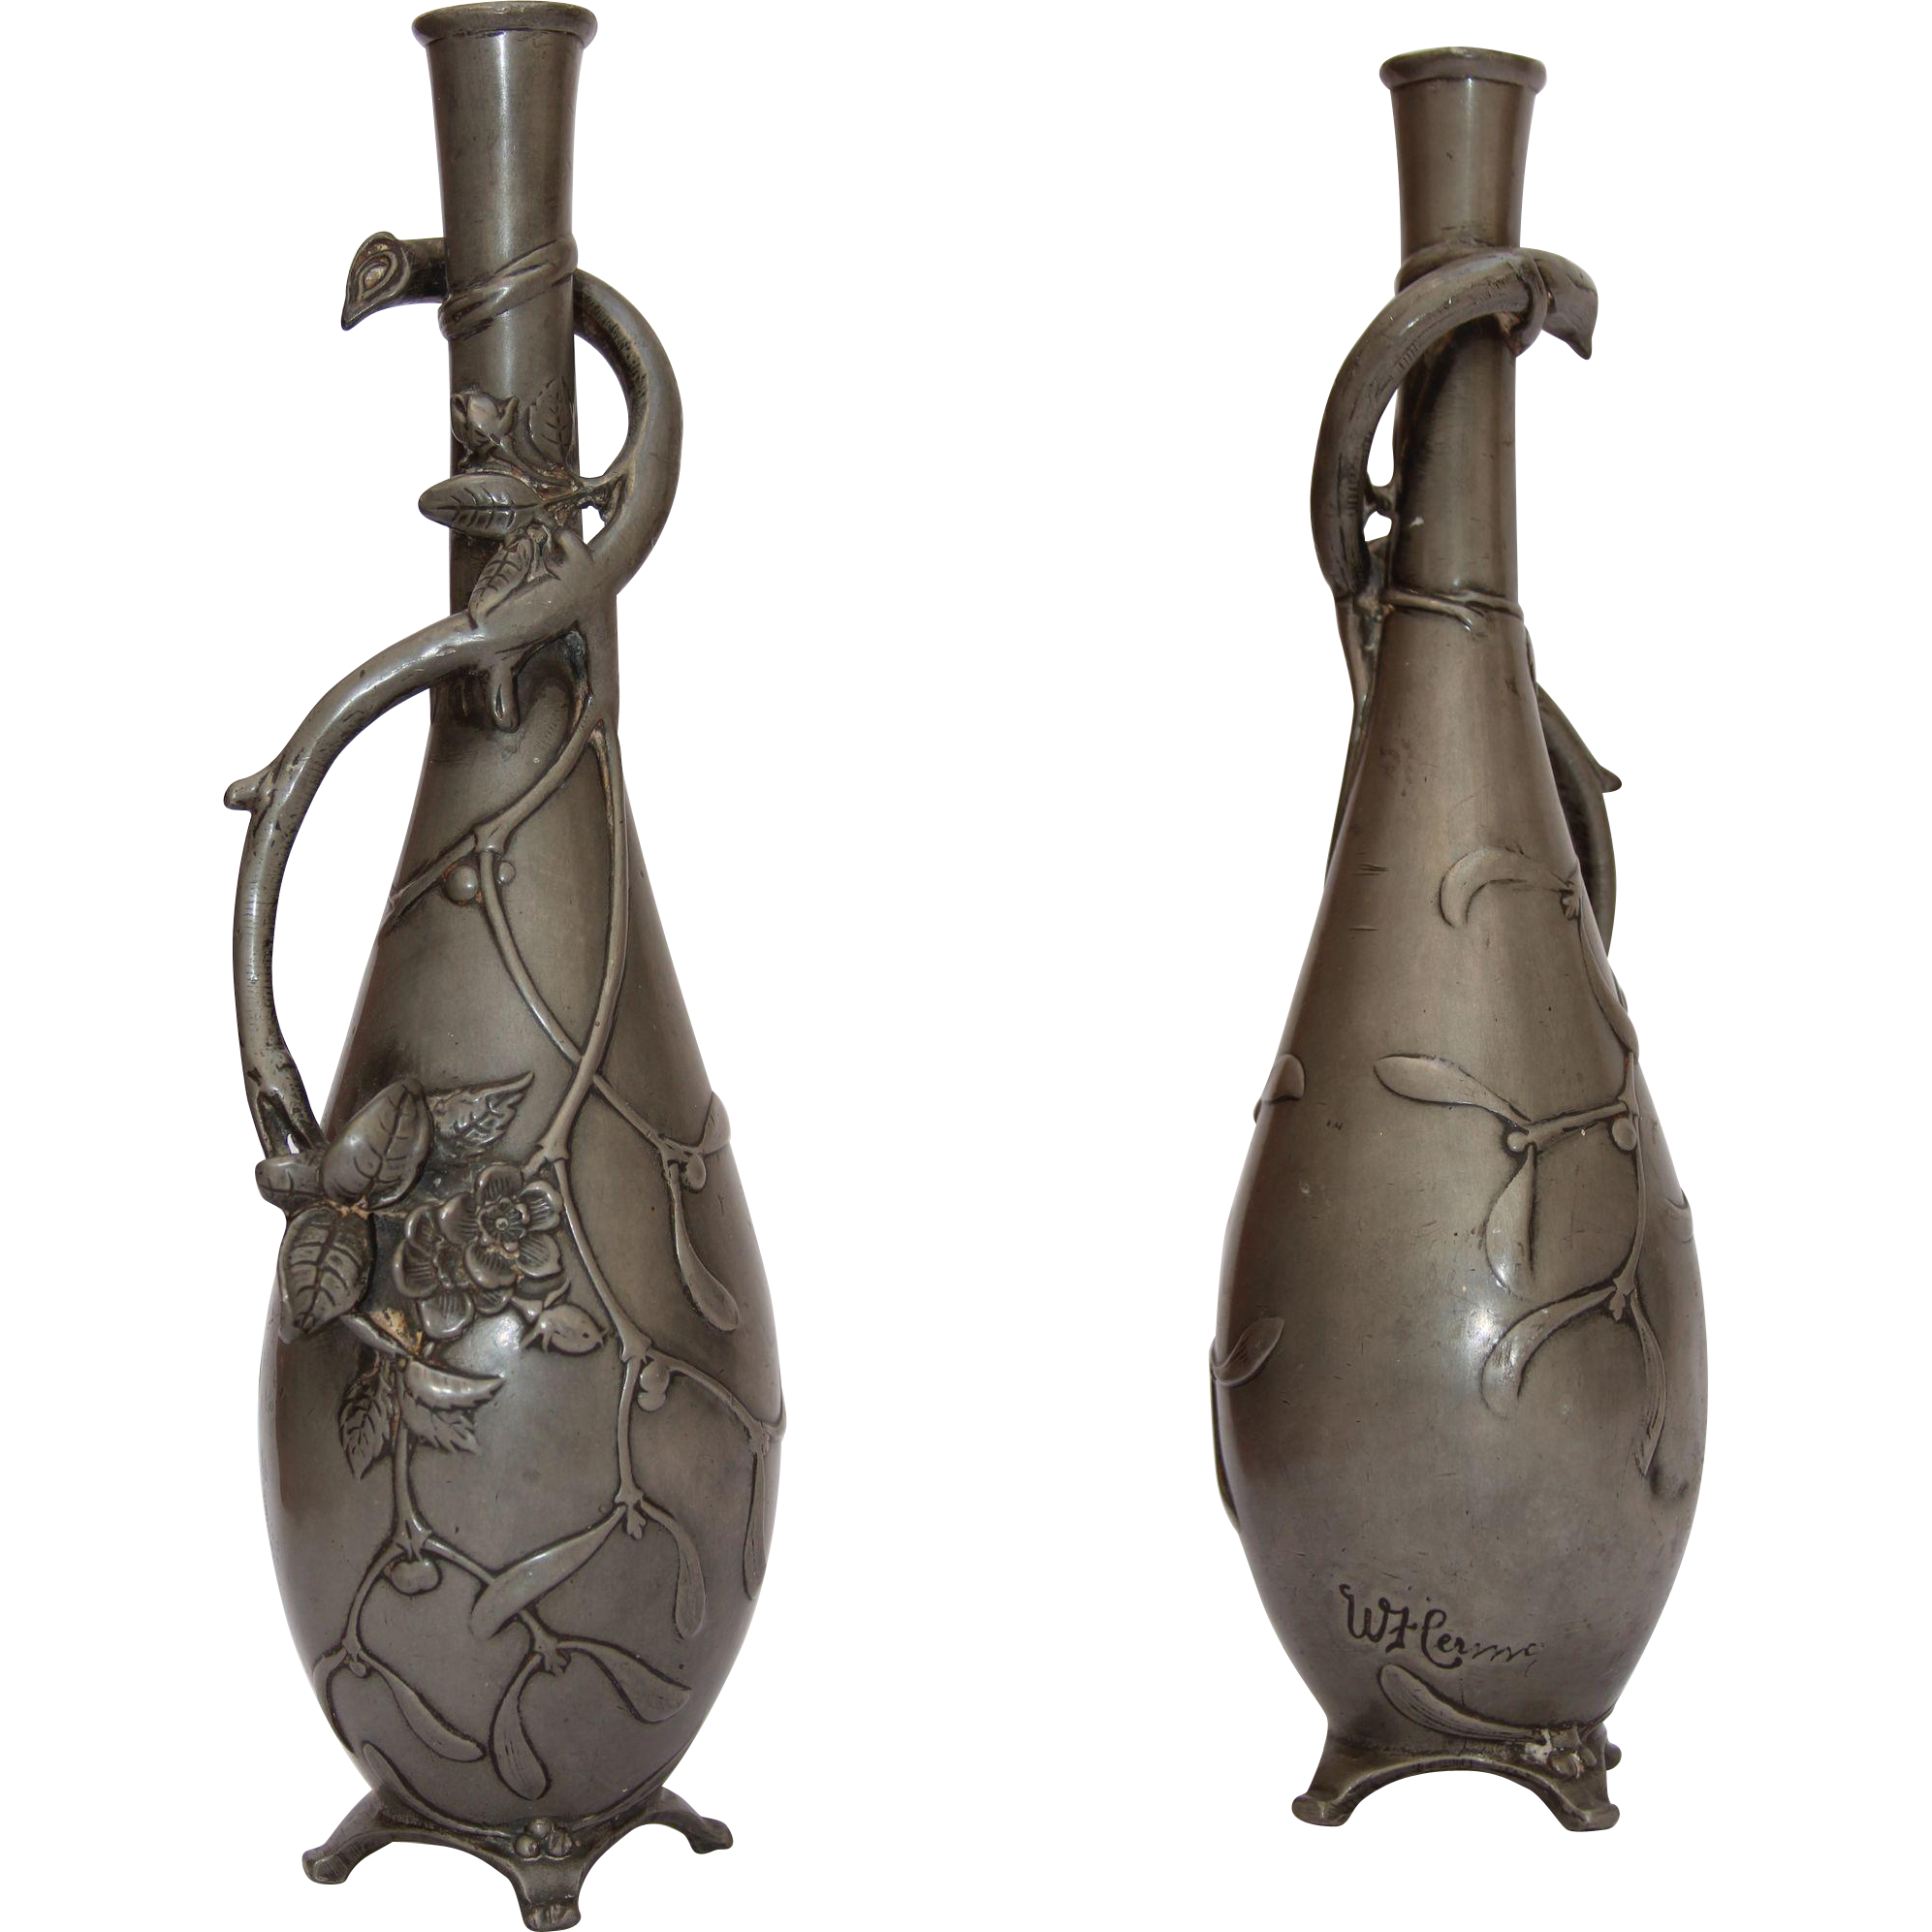 A Truly Stunning And Rare Antique Art Nouveau Pewter Vase The Piece Features Intricate Wild Roses Vines And Mistl Antique Art Art Nouveau Art Nouveau Design